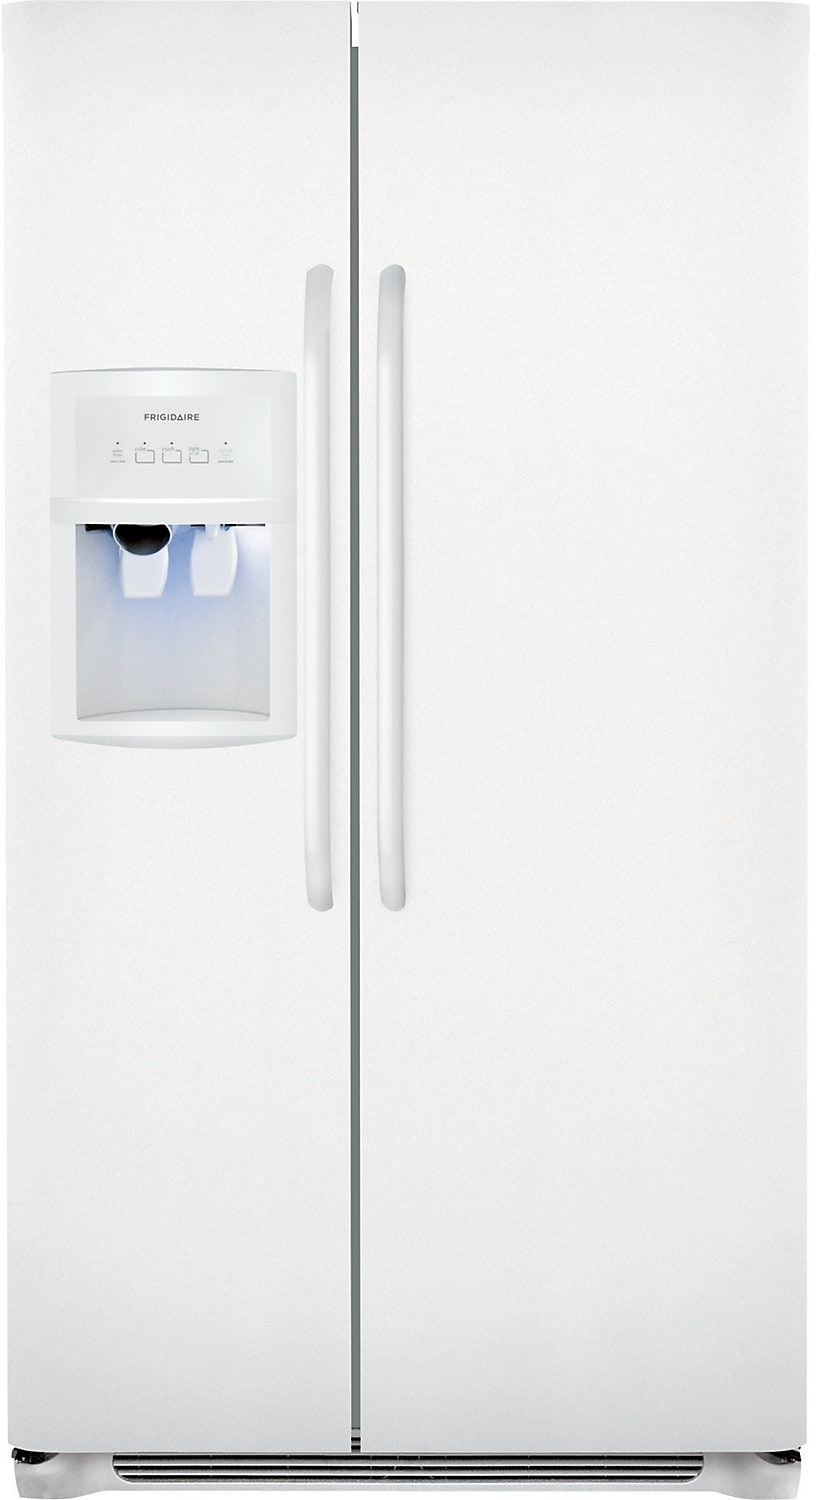 Refrigerators and Freezers - Frigidaire 23 Cu. Ft. Standard-Depth Side-by-Side Refrigerator - White